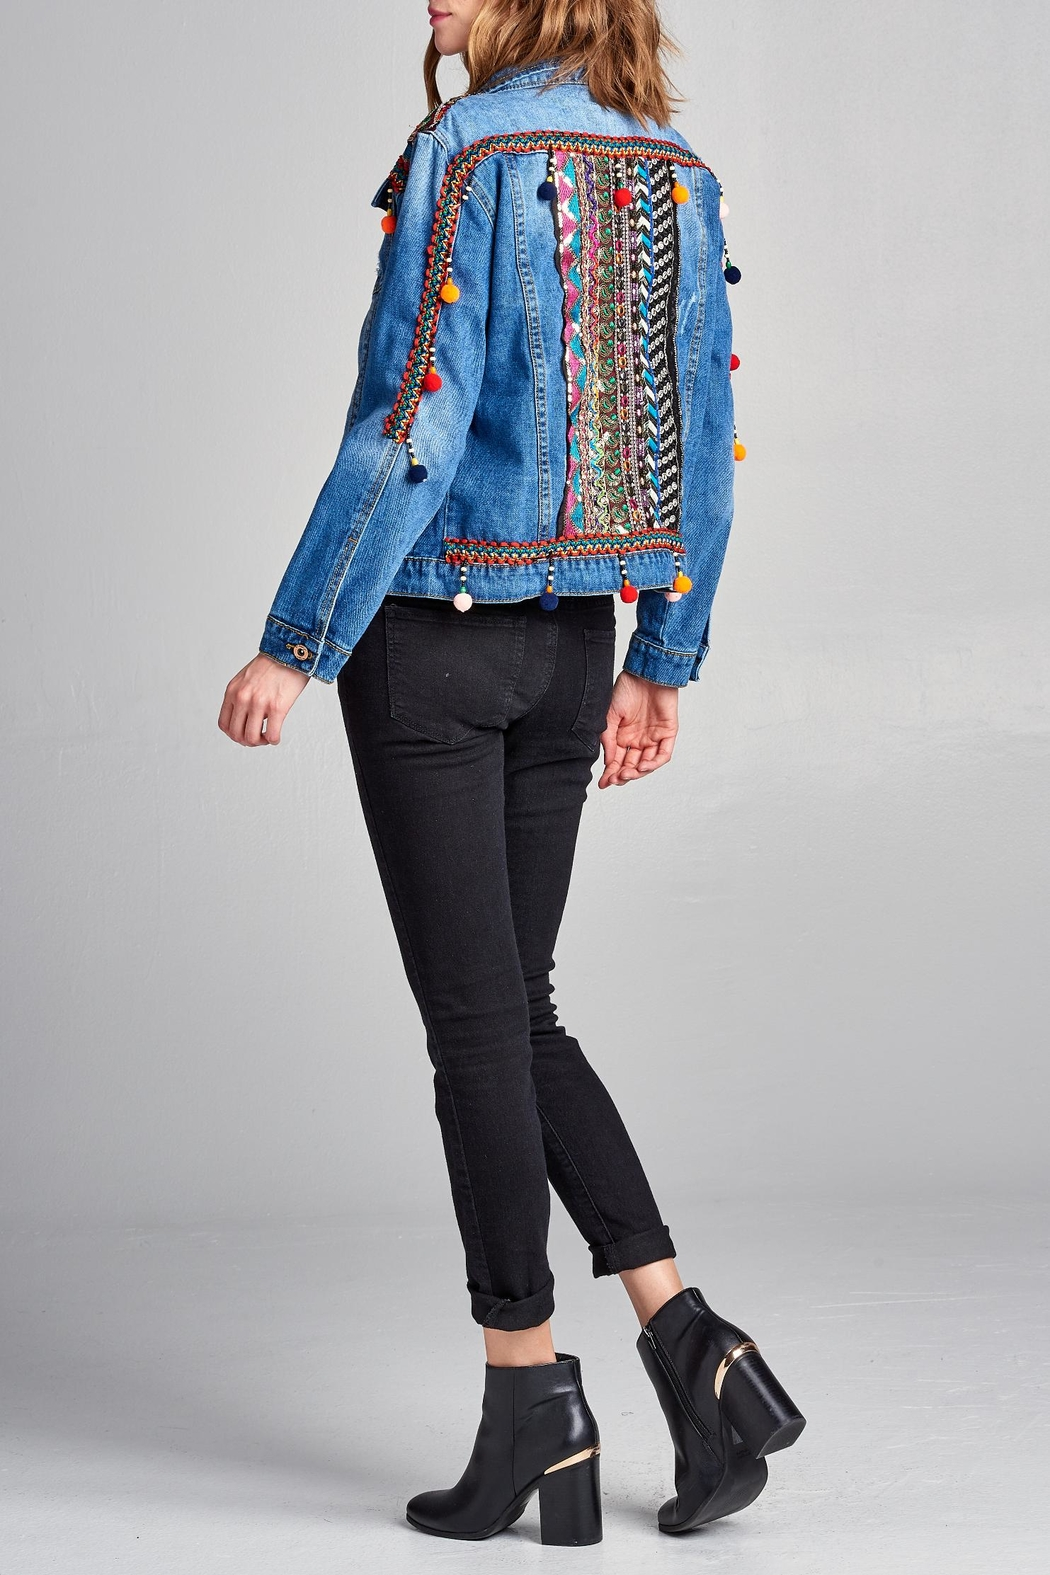 Velzera Pom-Pom Embroidered Jean-Jacket - Front Cropped Image